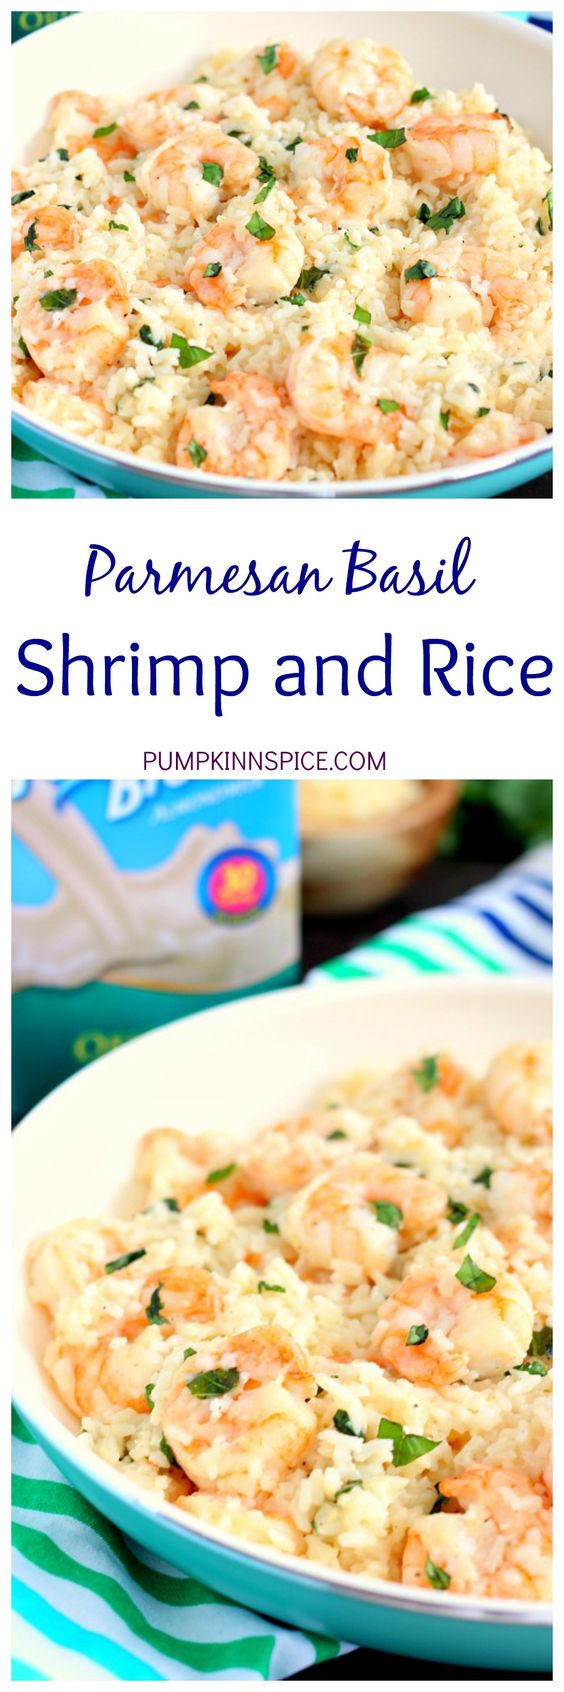 Parmesan Basil Shrimp and Rice is packed with tender shrimp and